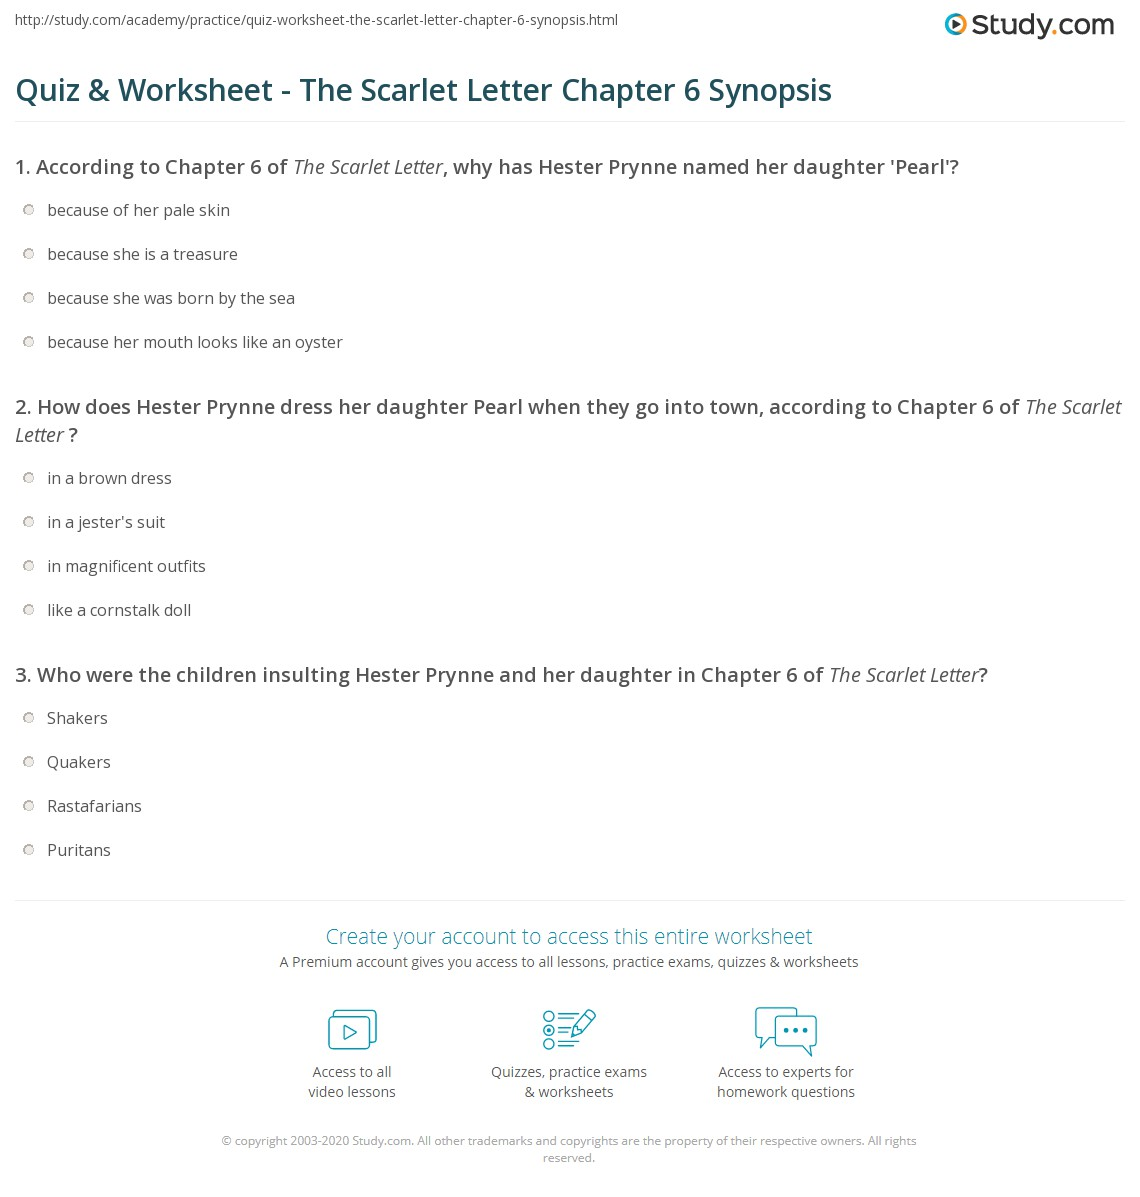 The Scarlet Letter Synopsis By Chapter